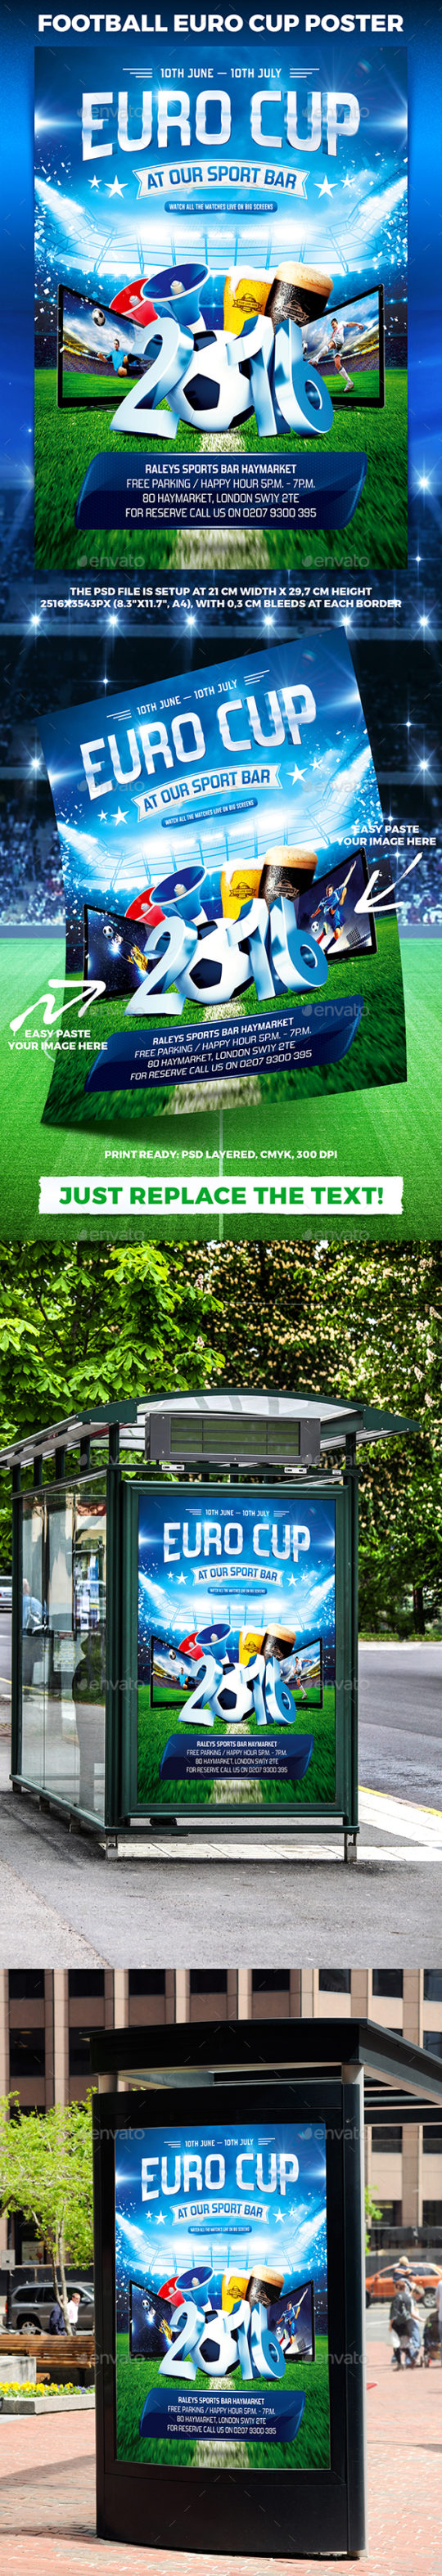 print ads archives print ad templates football euro cup poster vol 1